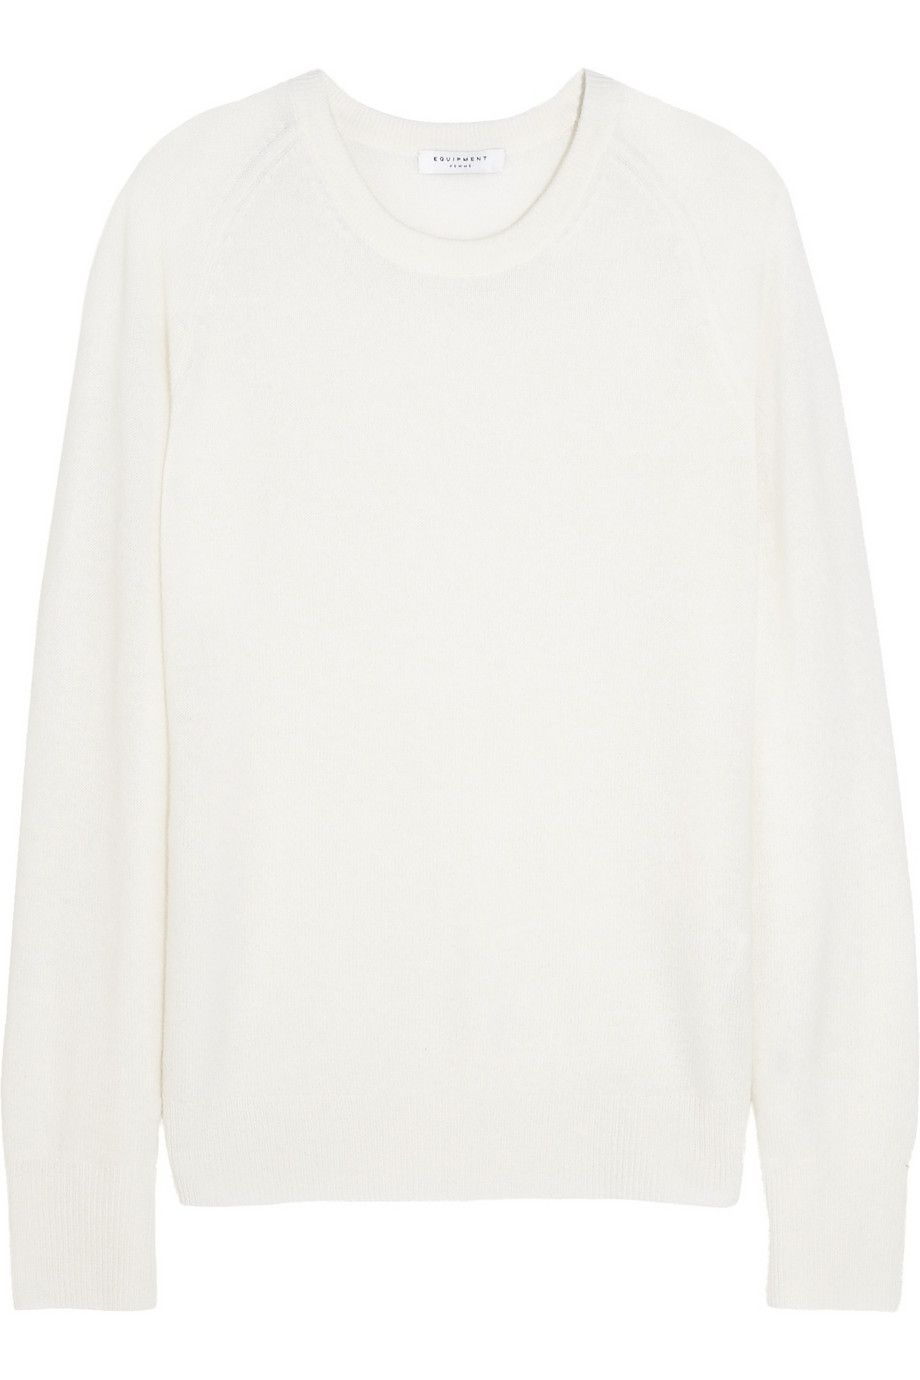 Equipment | Sloane cashmere sweater